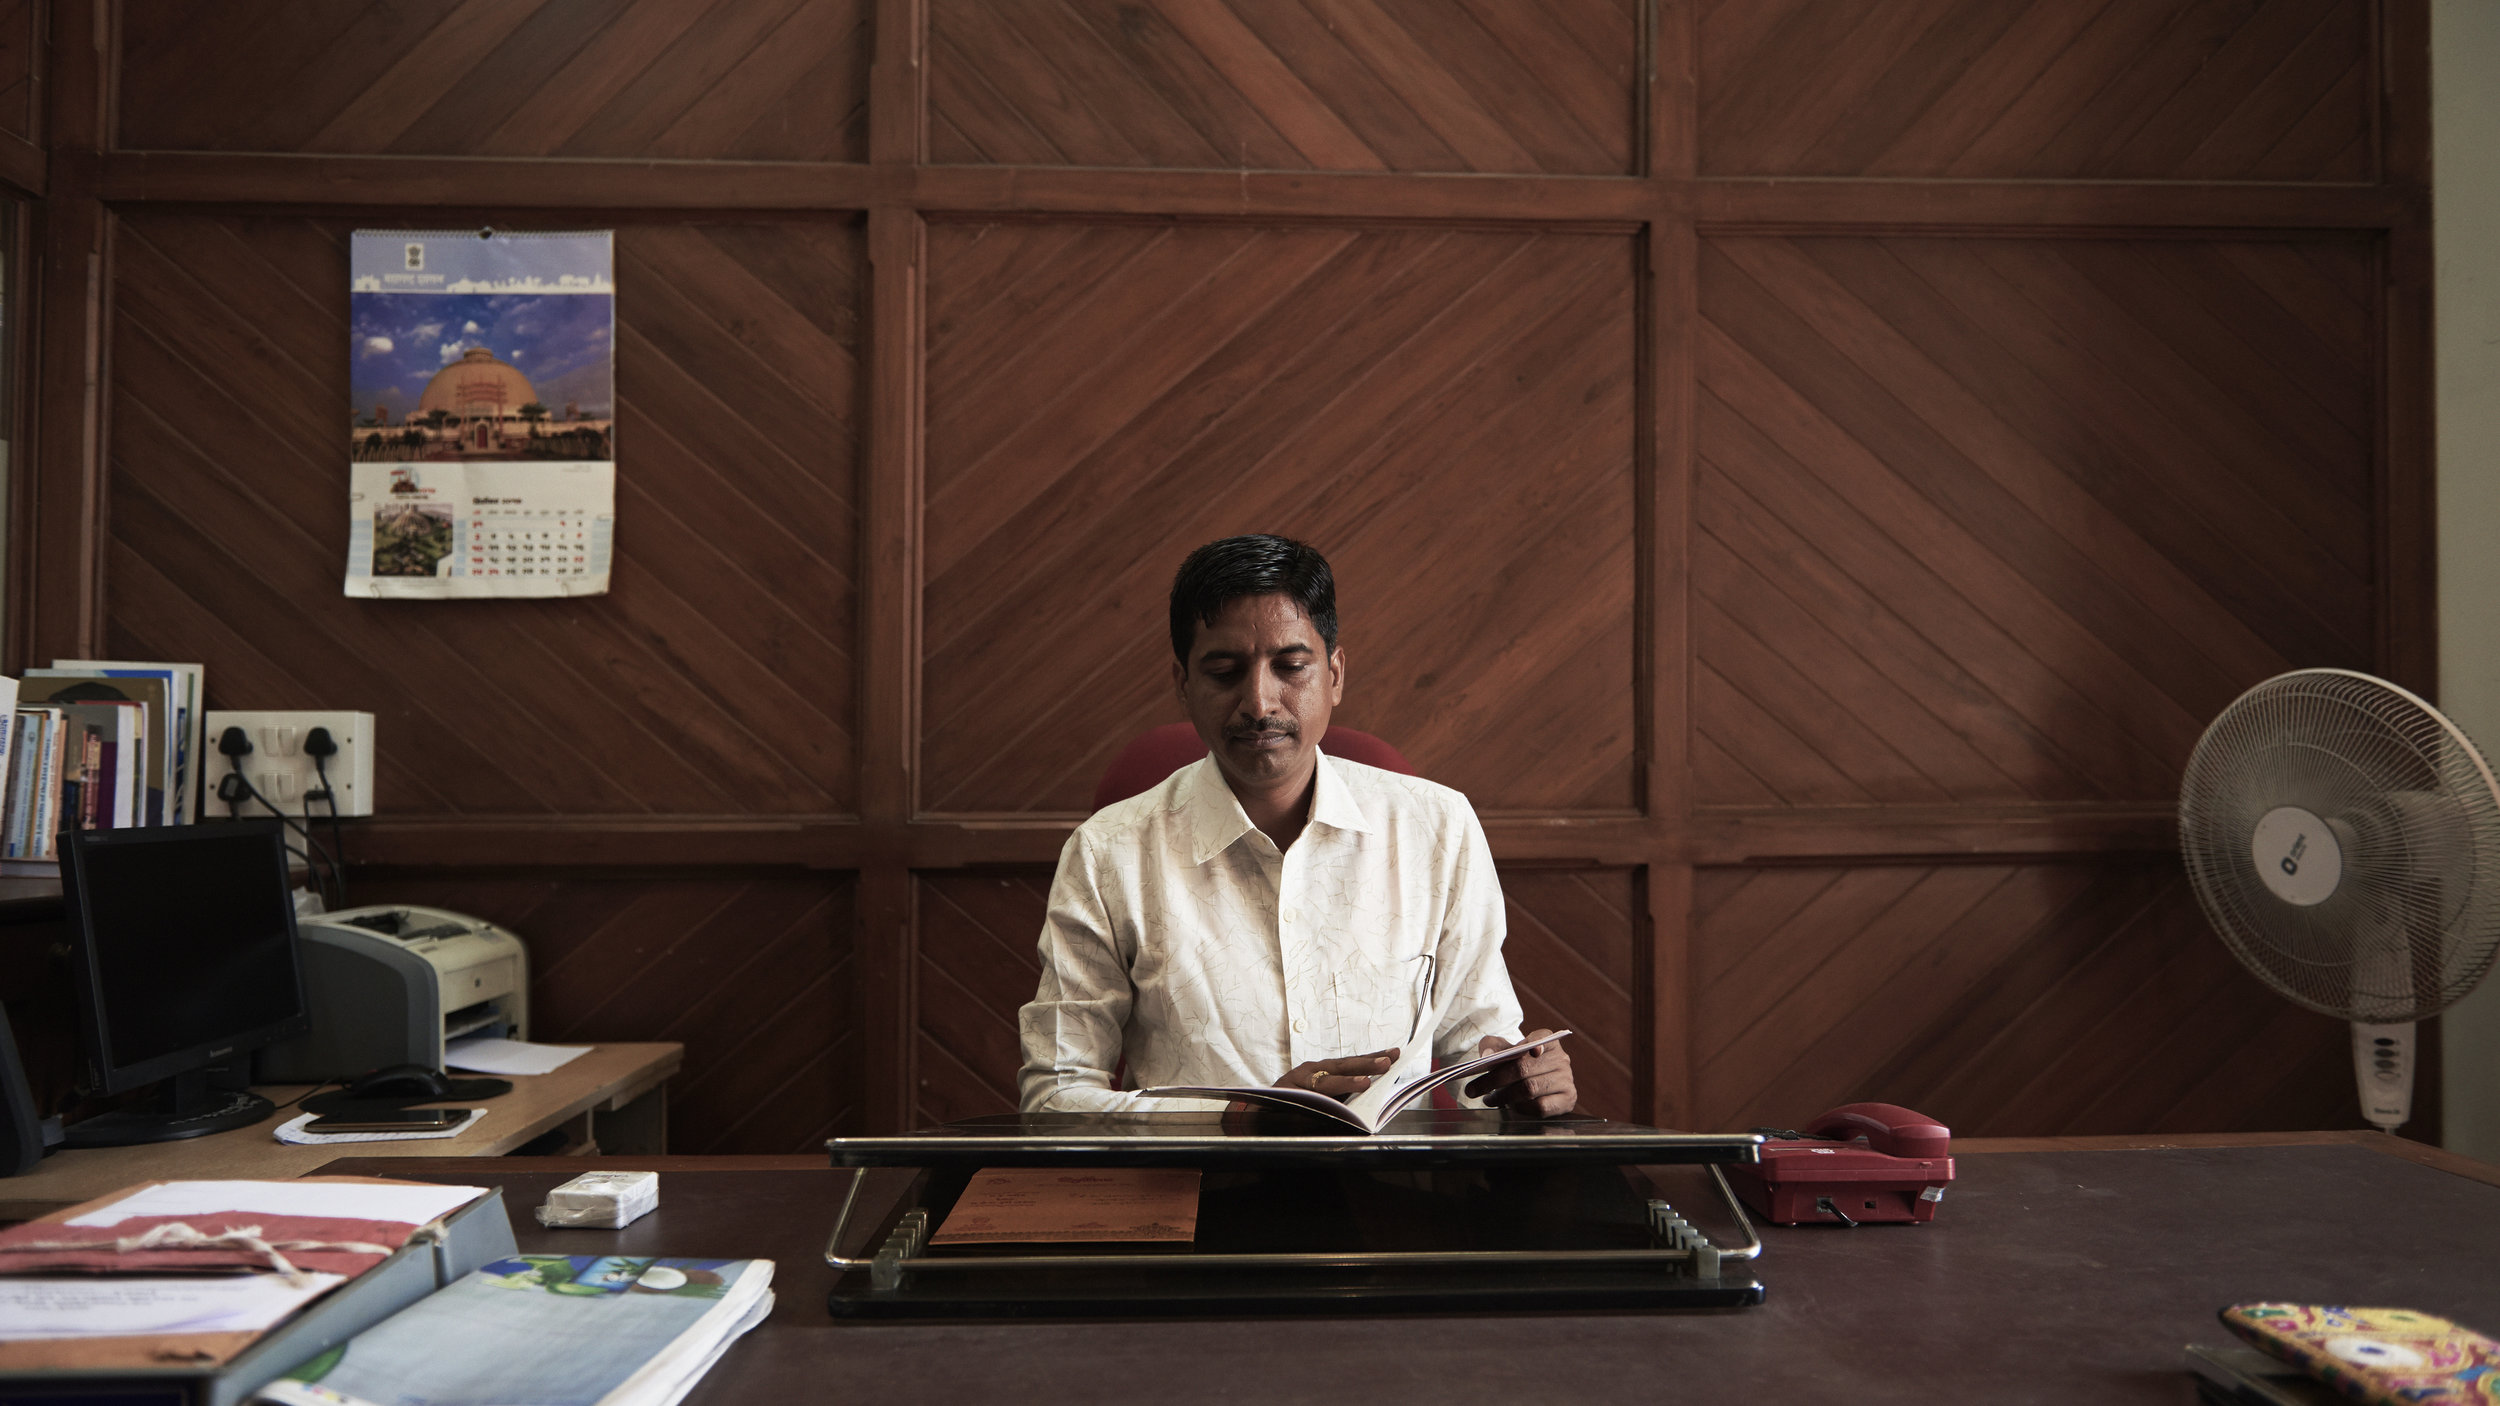 Mr Shashikant Kakad is the Head Librarian at The State Central Library that shares space with The Asiatic Society.